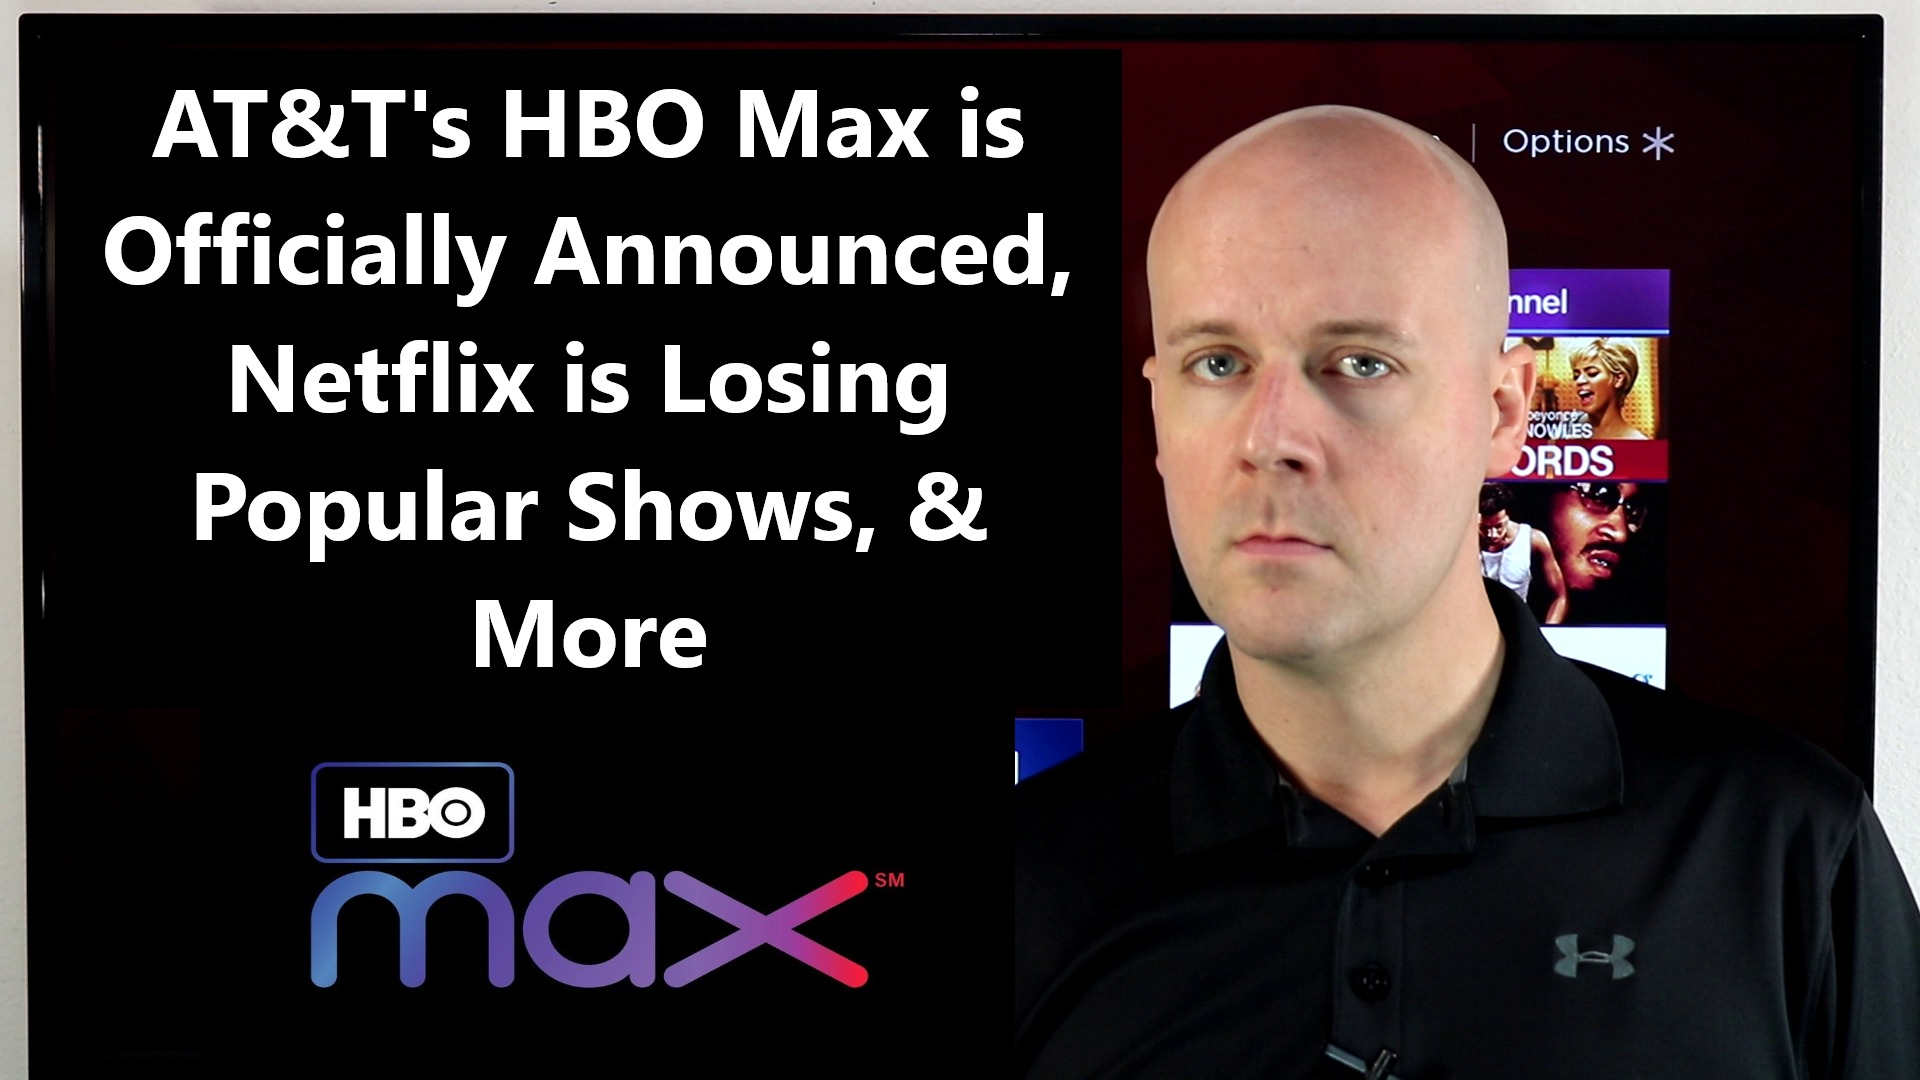 HBO MAX 'Will Not Change' Competing DC UNIVERSE Streaming Service Says Warner Bros.